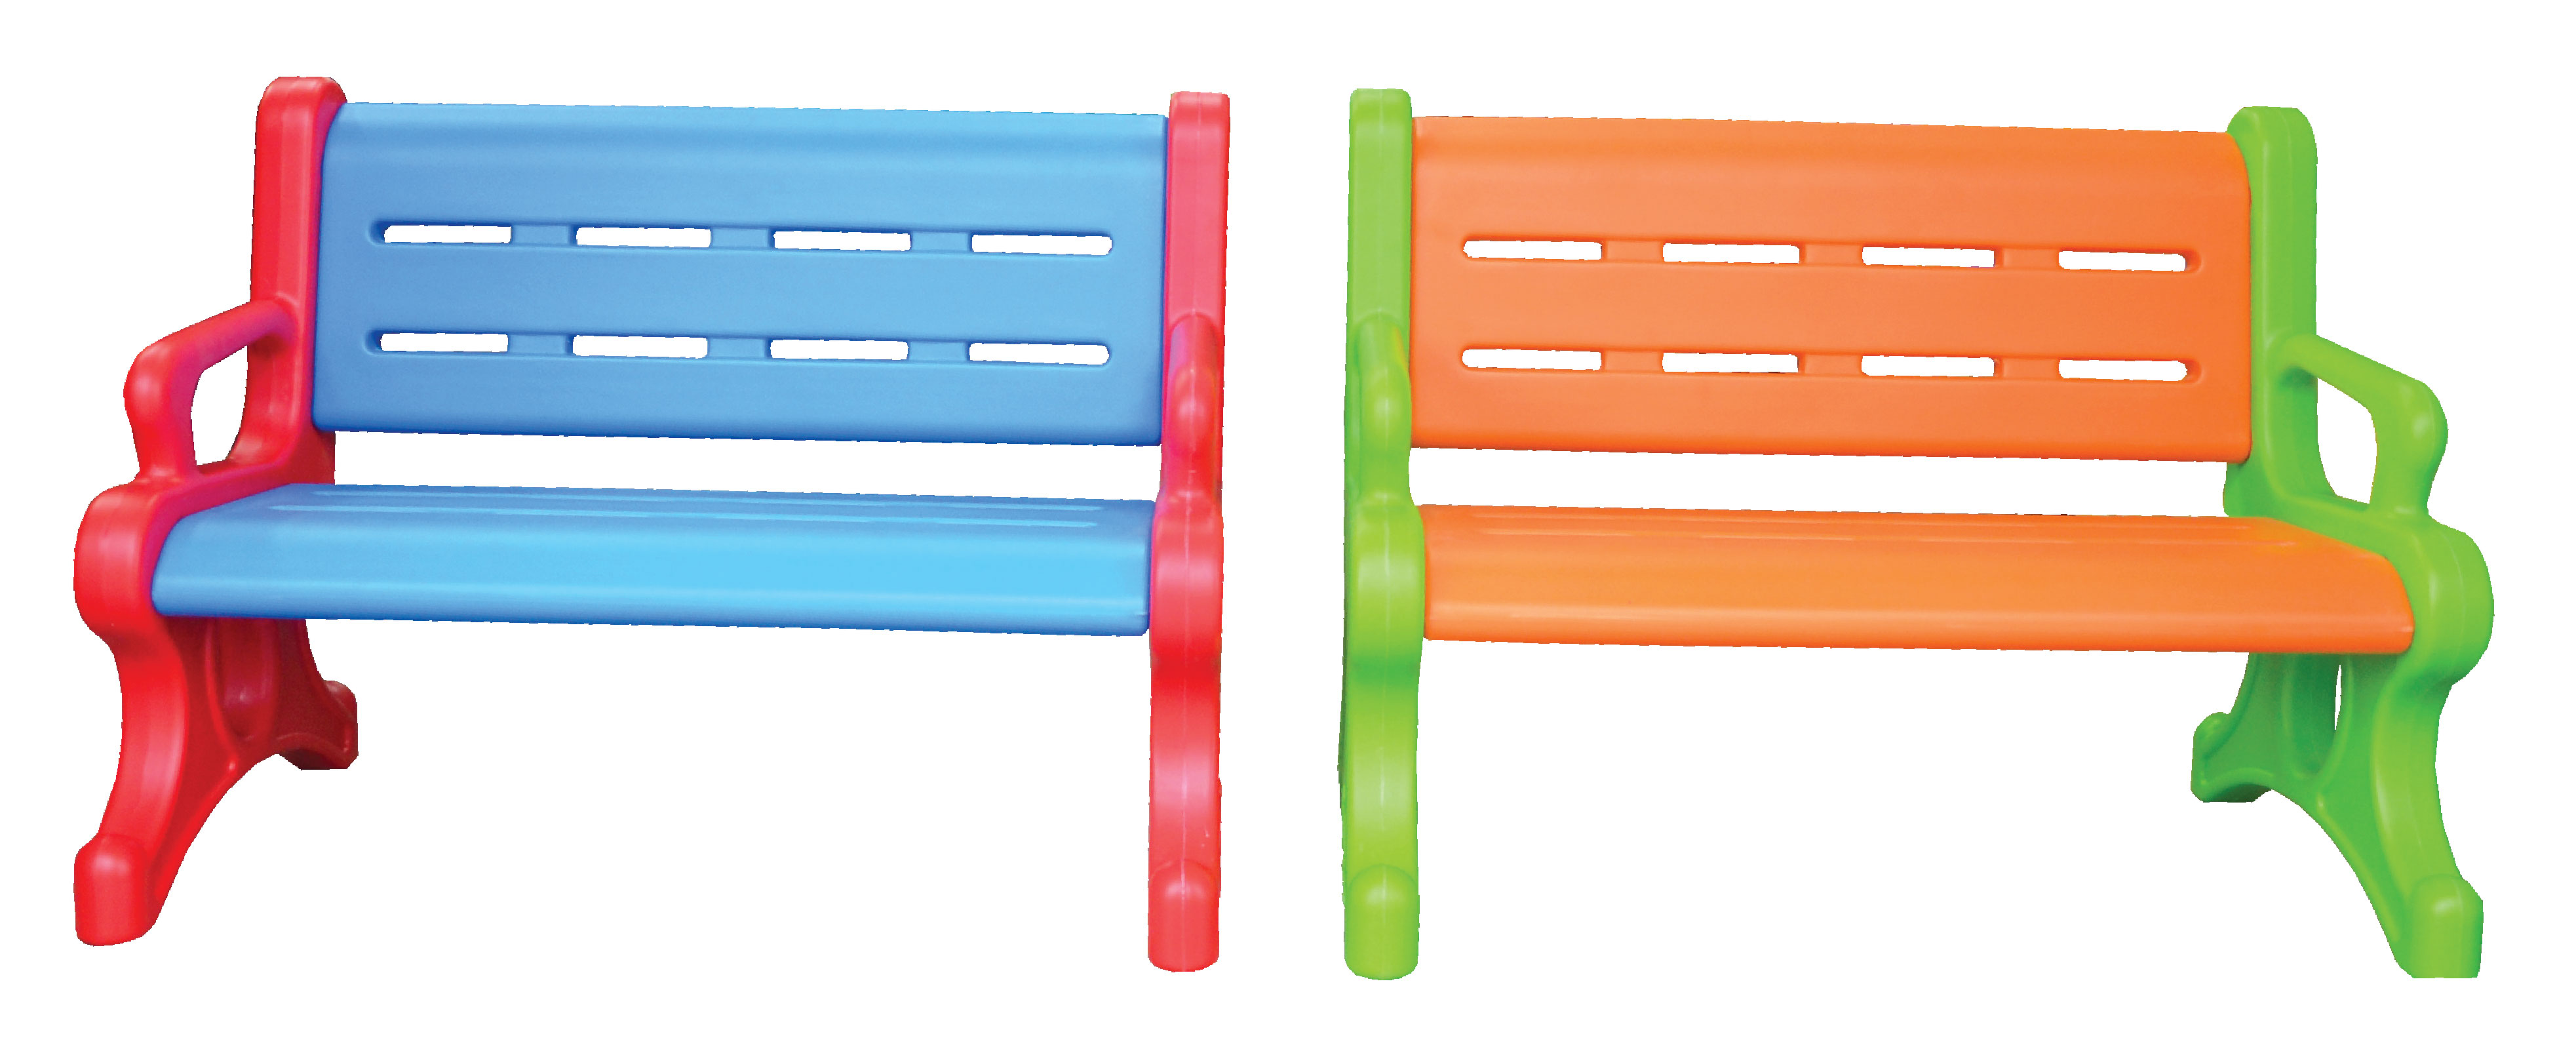 CHILDREN PLASTIC LEISURE BENCH